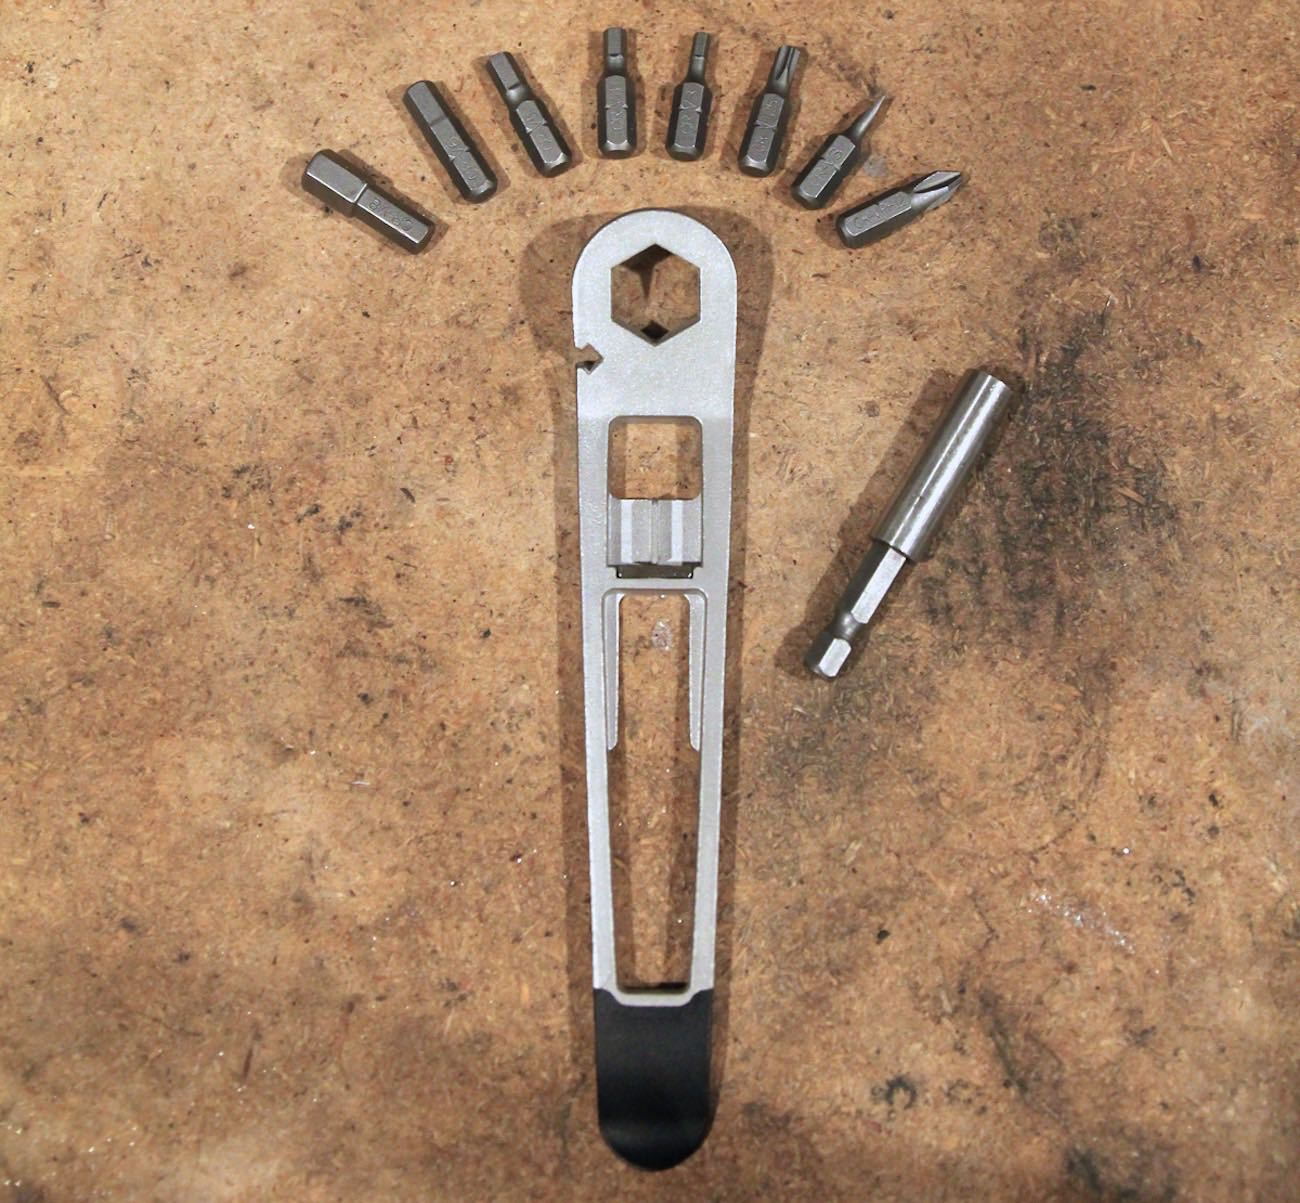 Nutter Multi Tool by Full Windsor